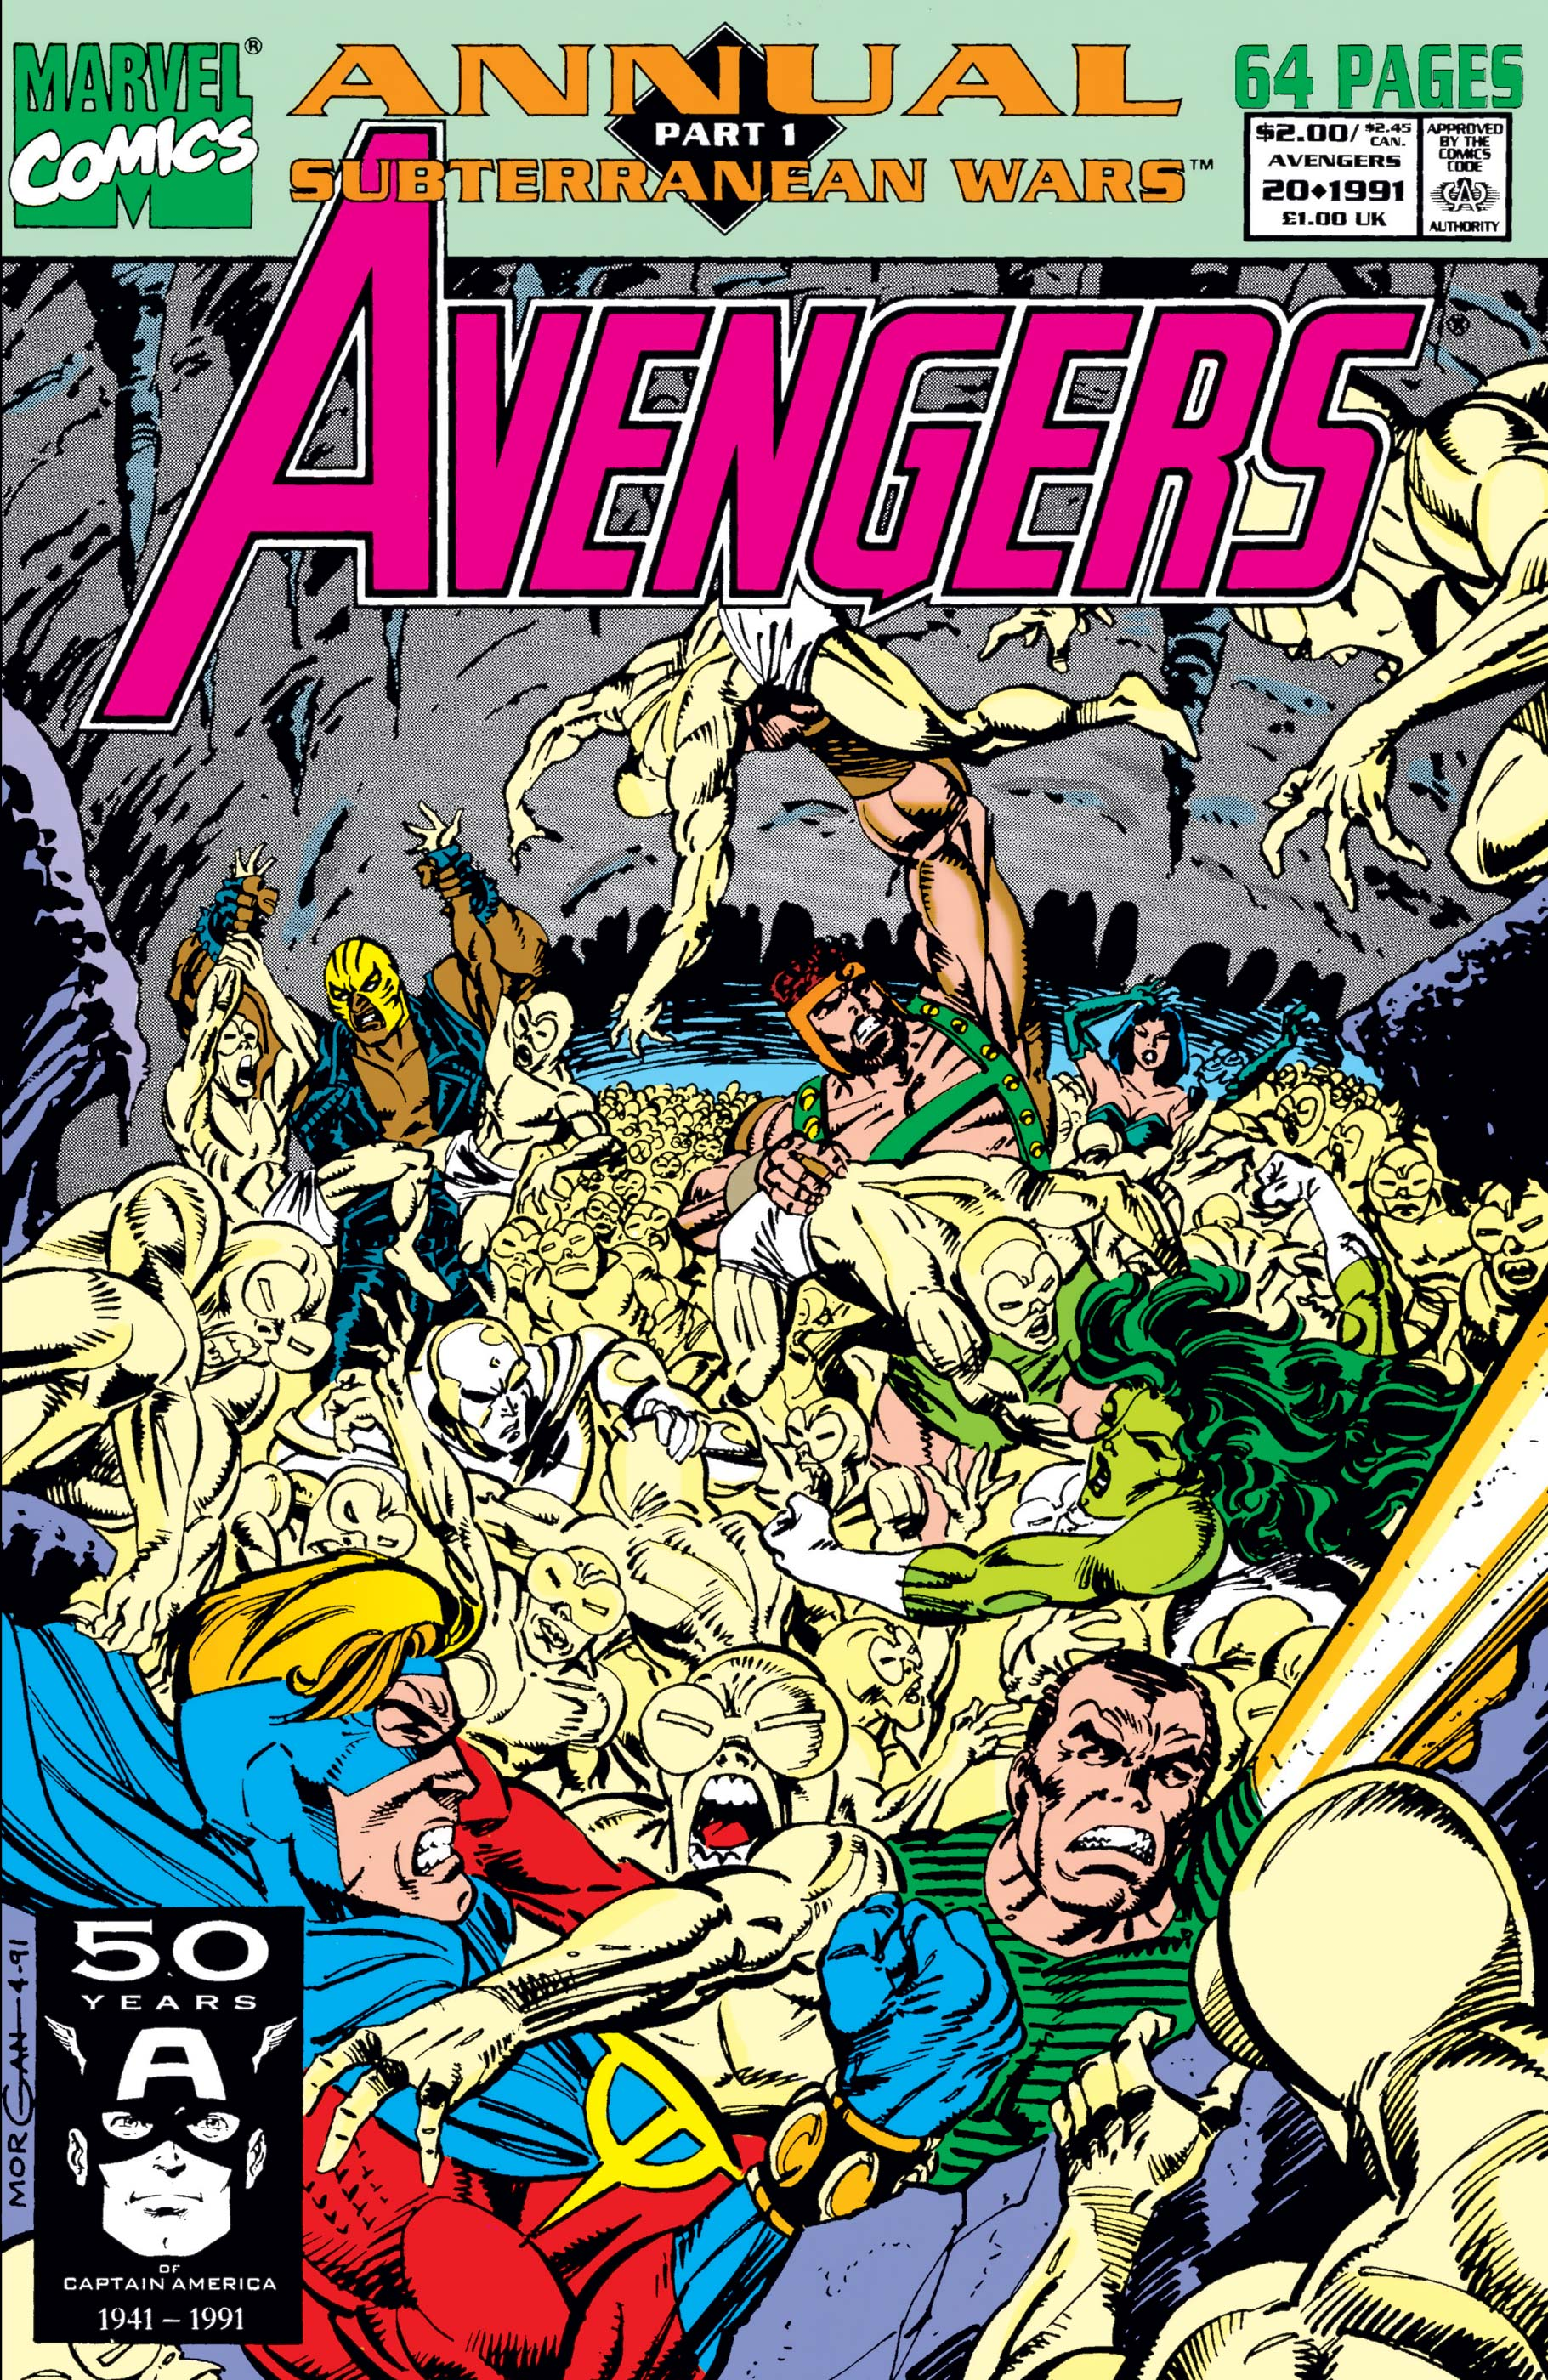 Avengers Annual (1967) #20